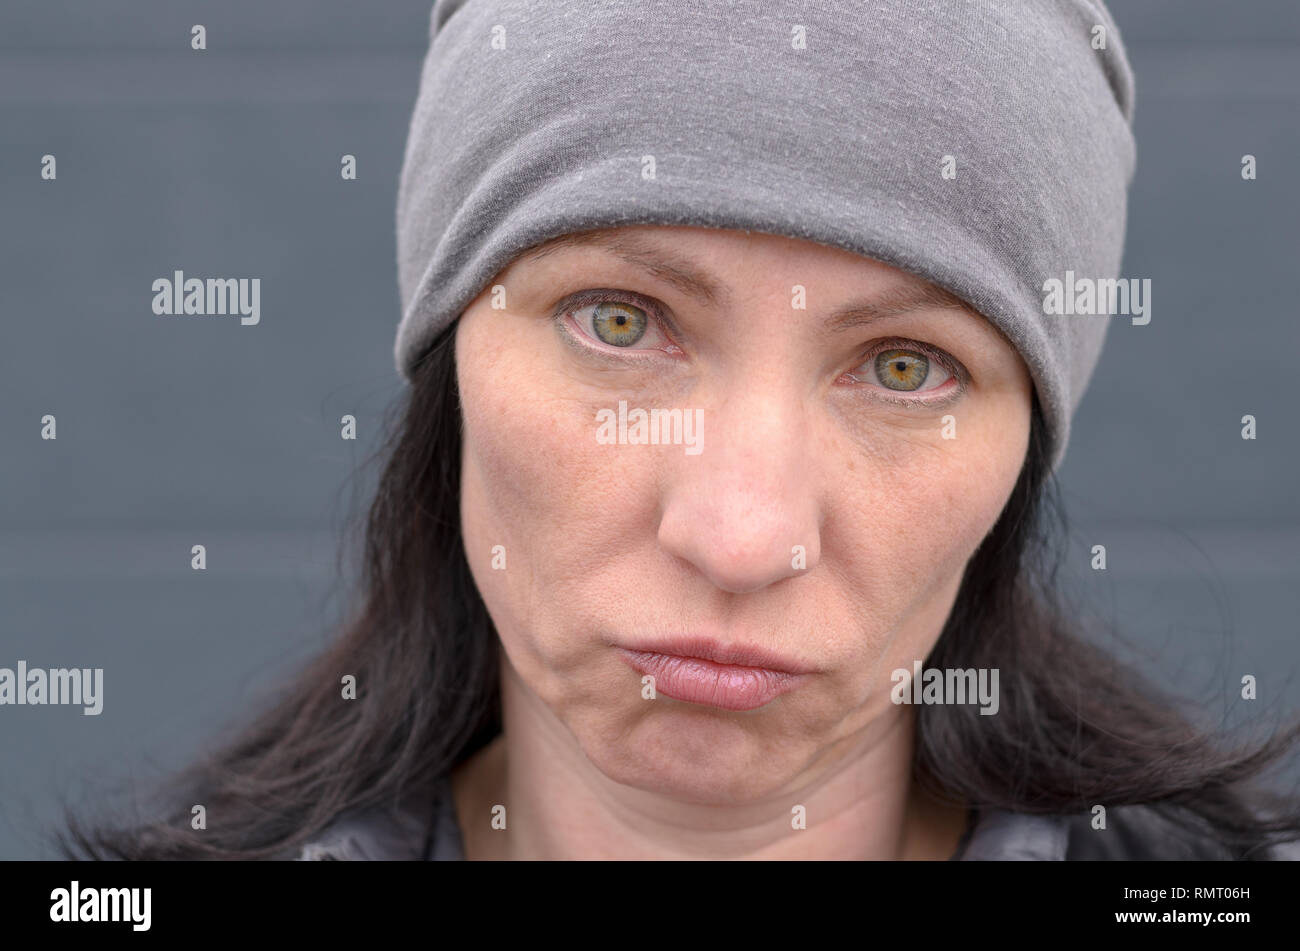 Dubious woman wearing a knitted grey winter cap grimacing and looking at camera with a sad expression in a close up cropped portrait - Stock Image